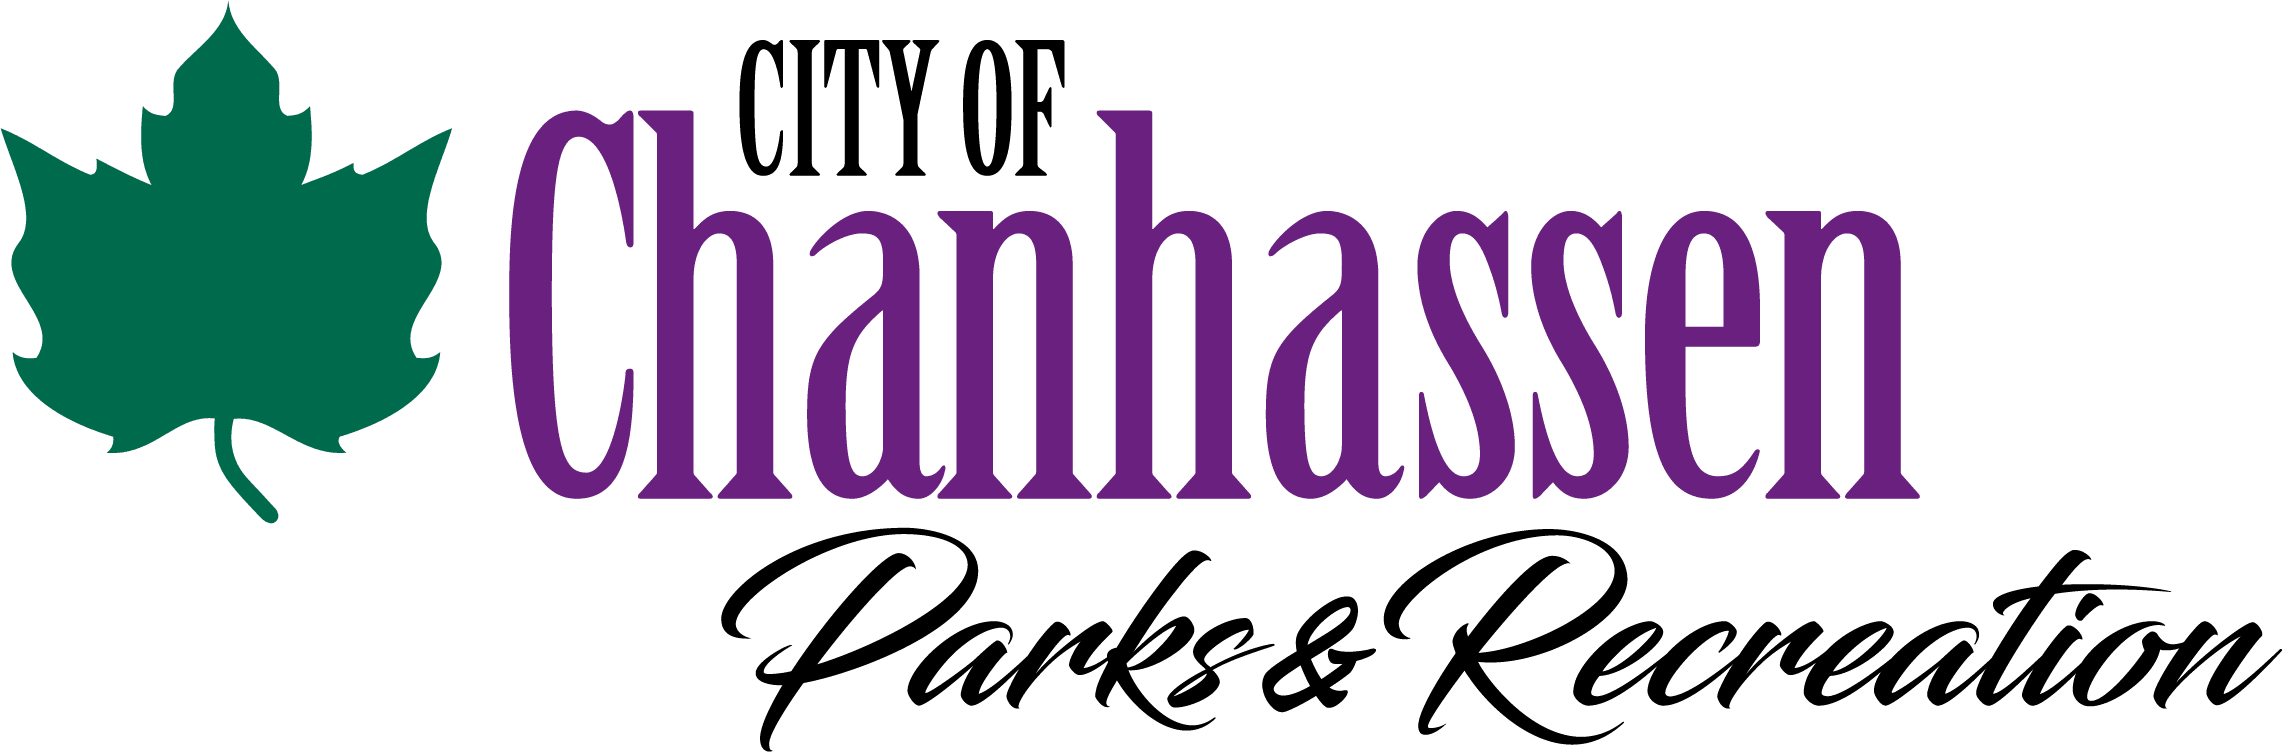 Chanhassen Parks and Rec Logo